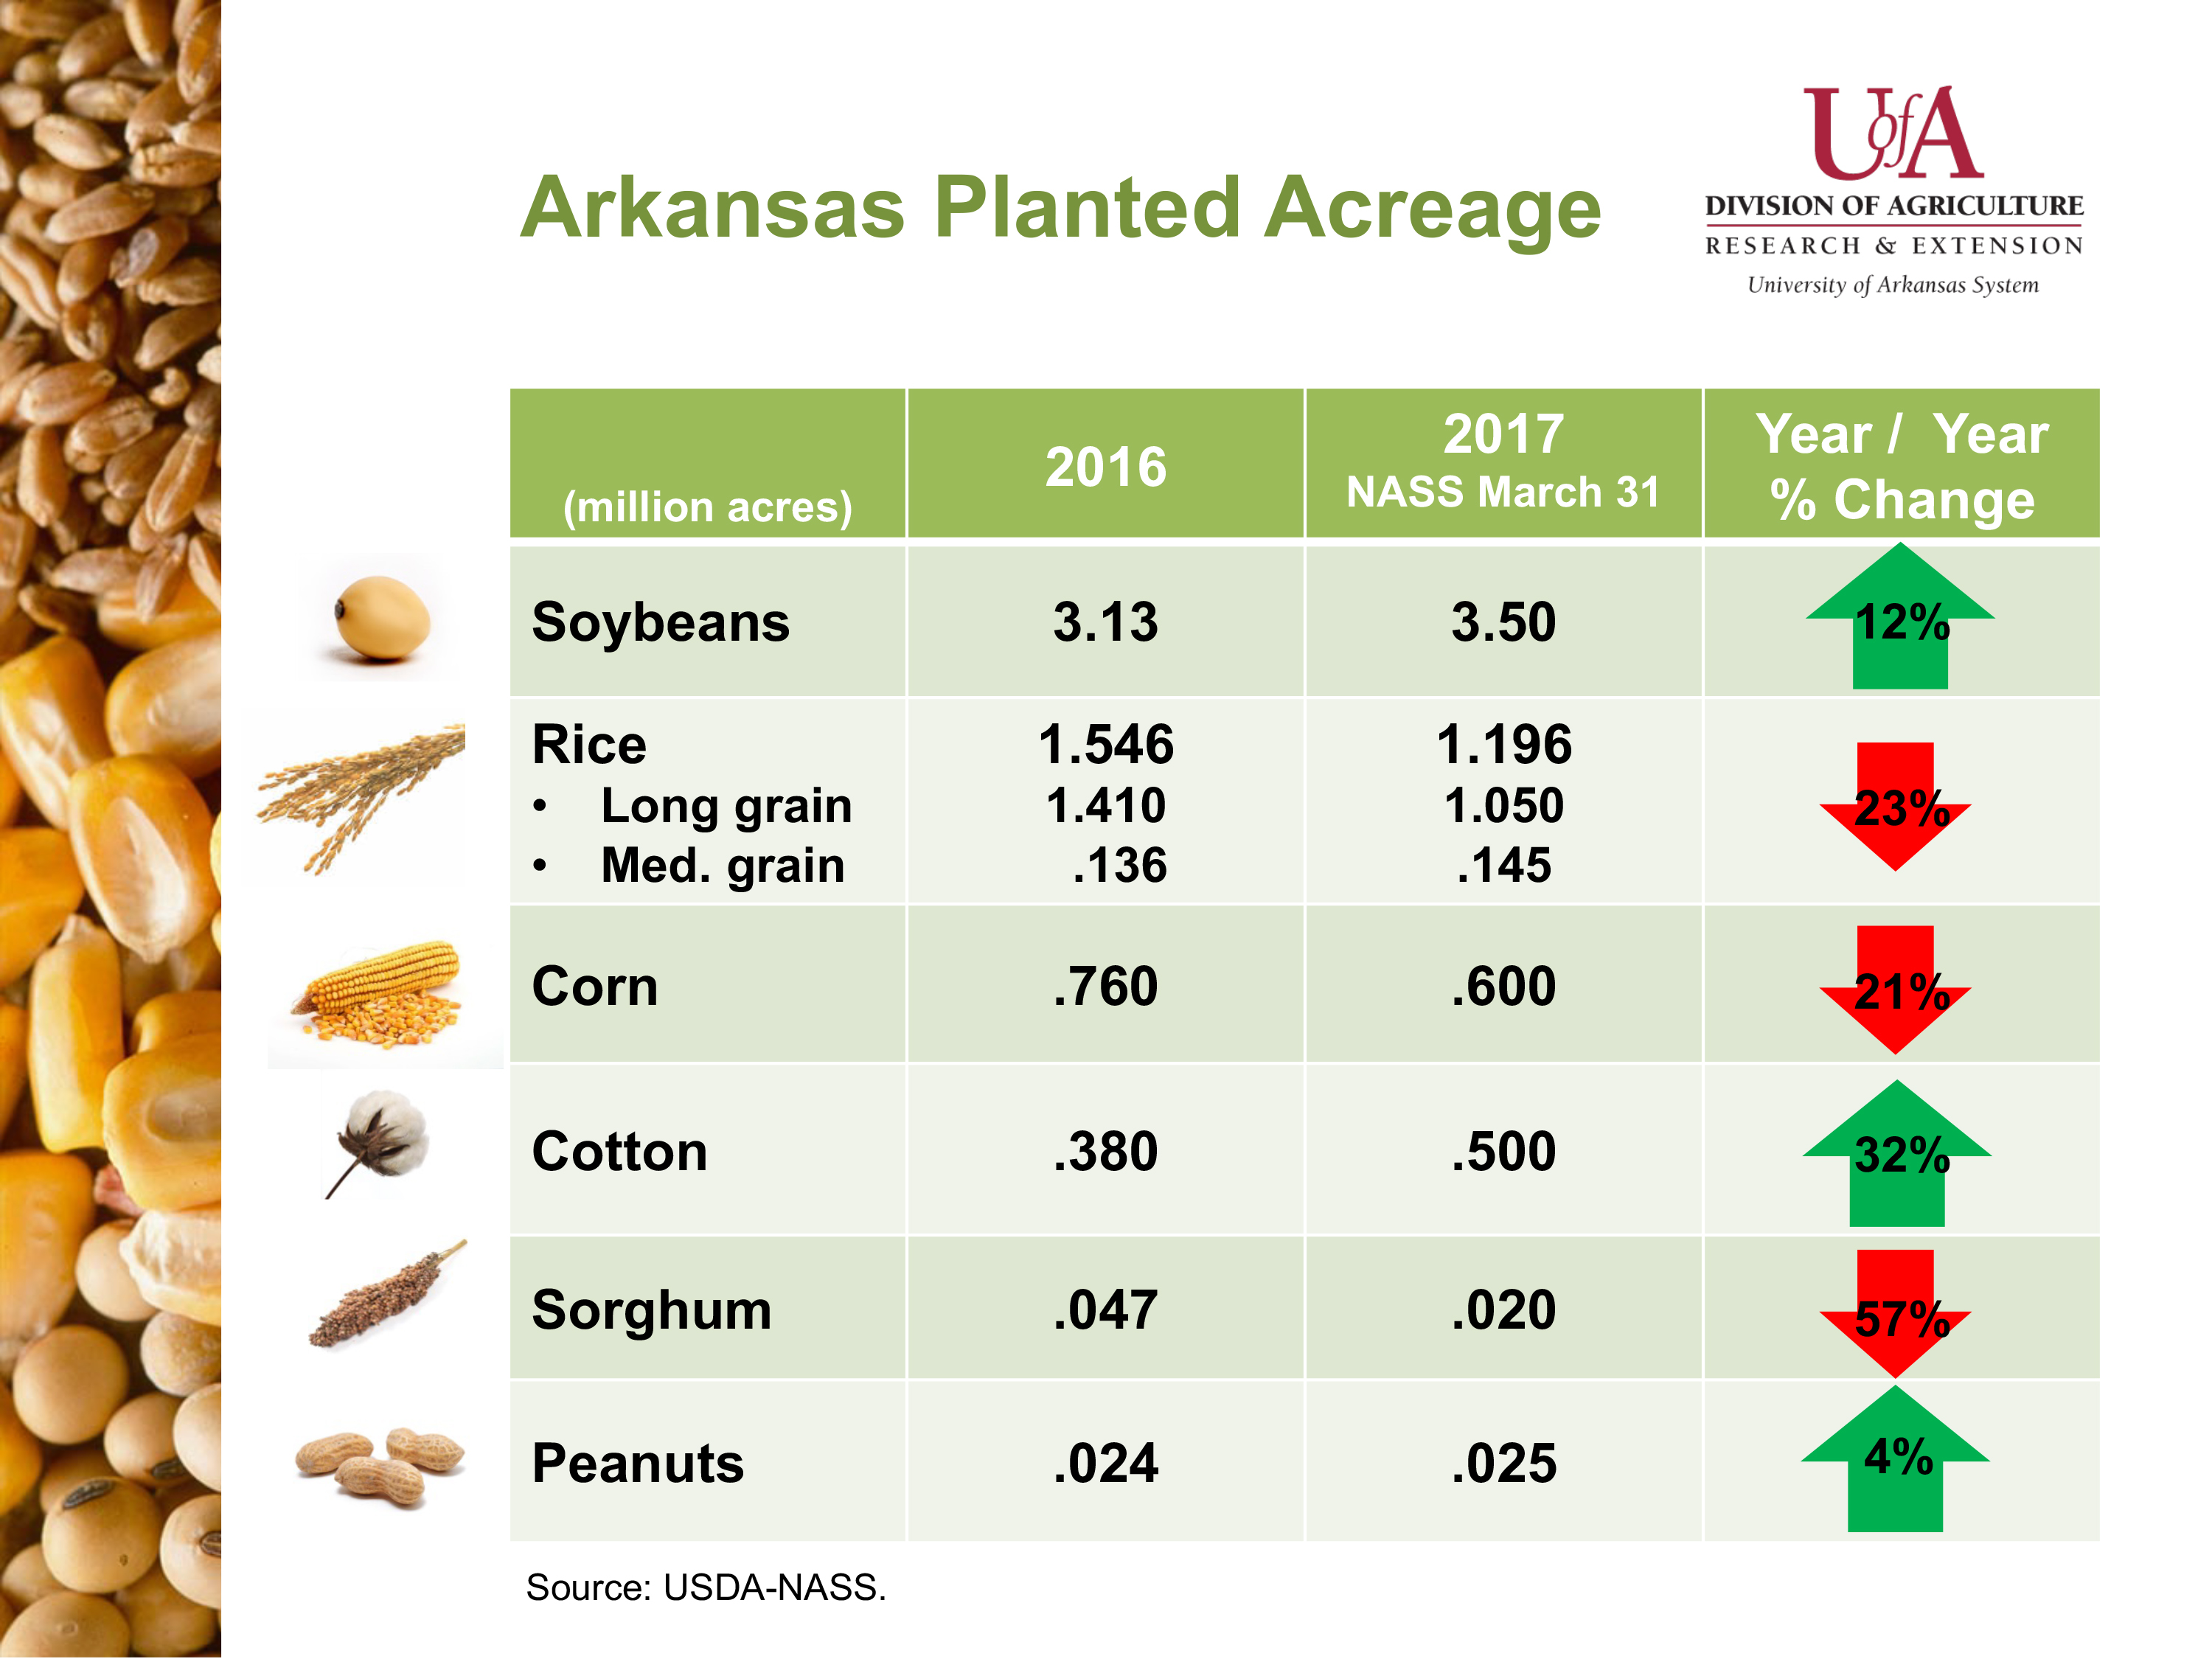 U.S. and Arkansas Planted Acreage